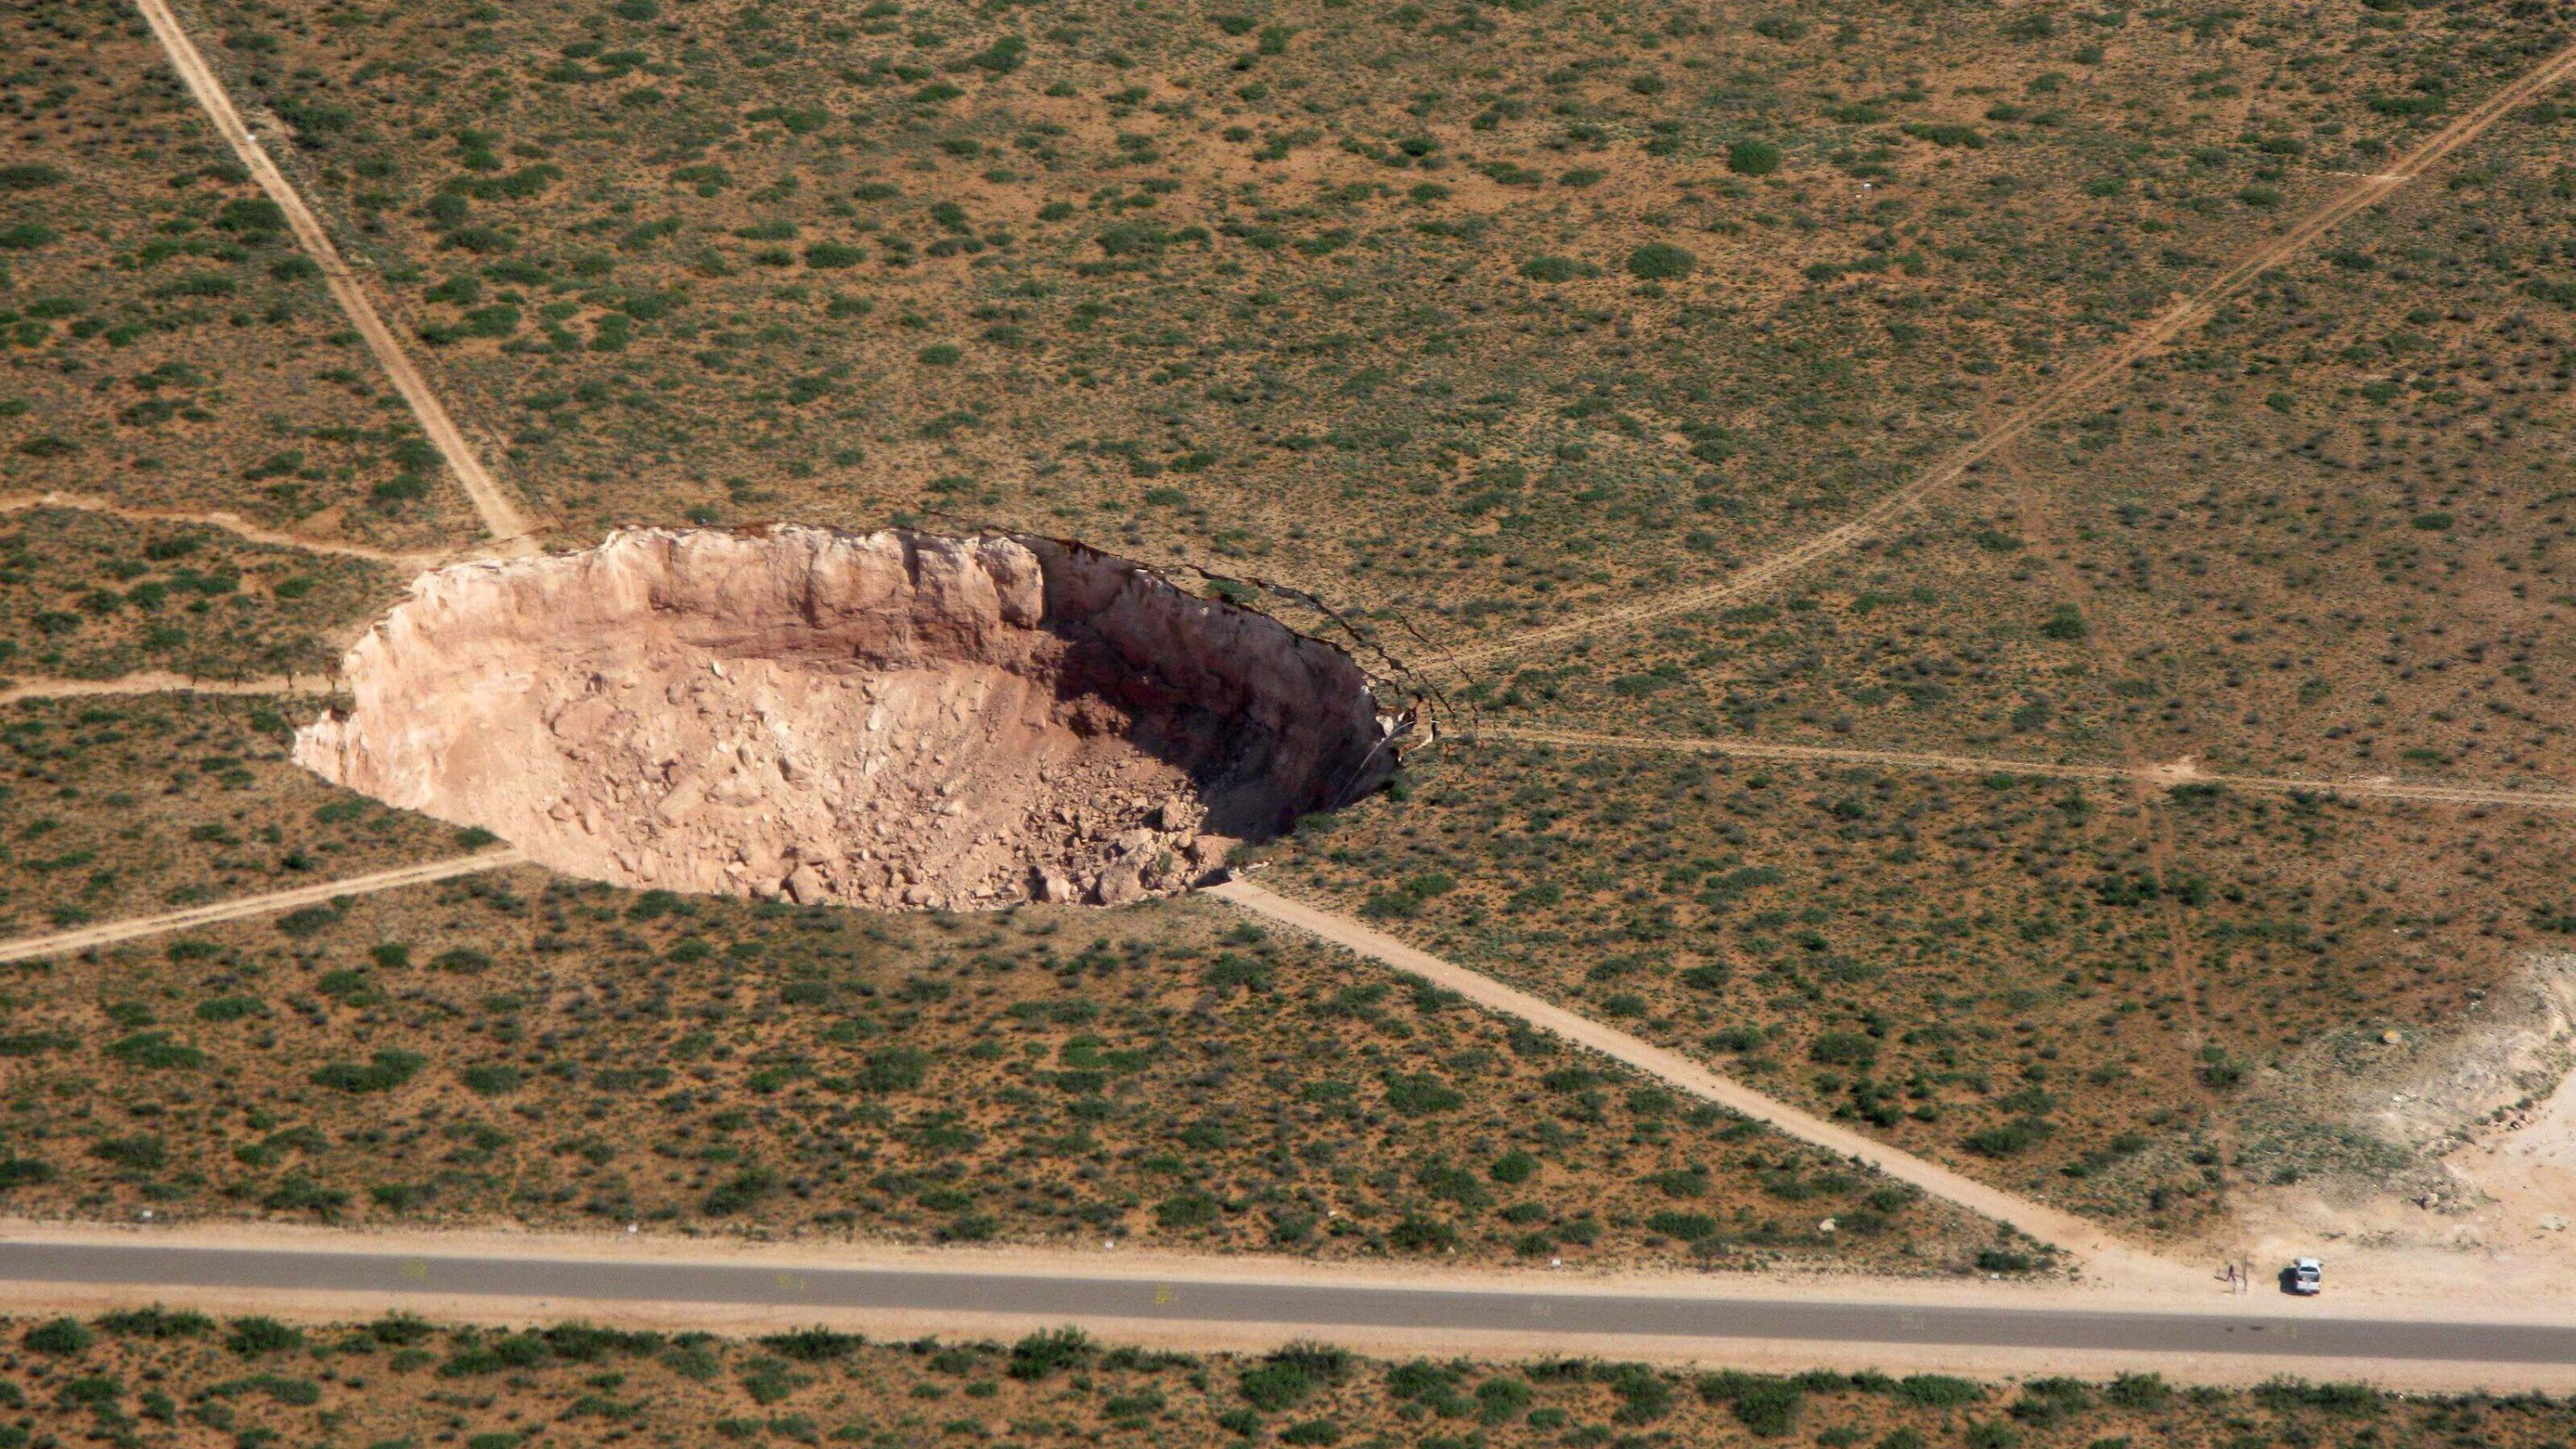 Land research shows a sinkhole in Eddy County, New Mexico